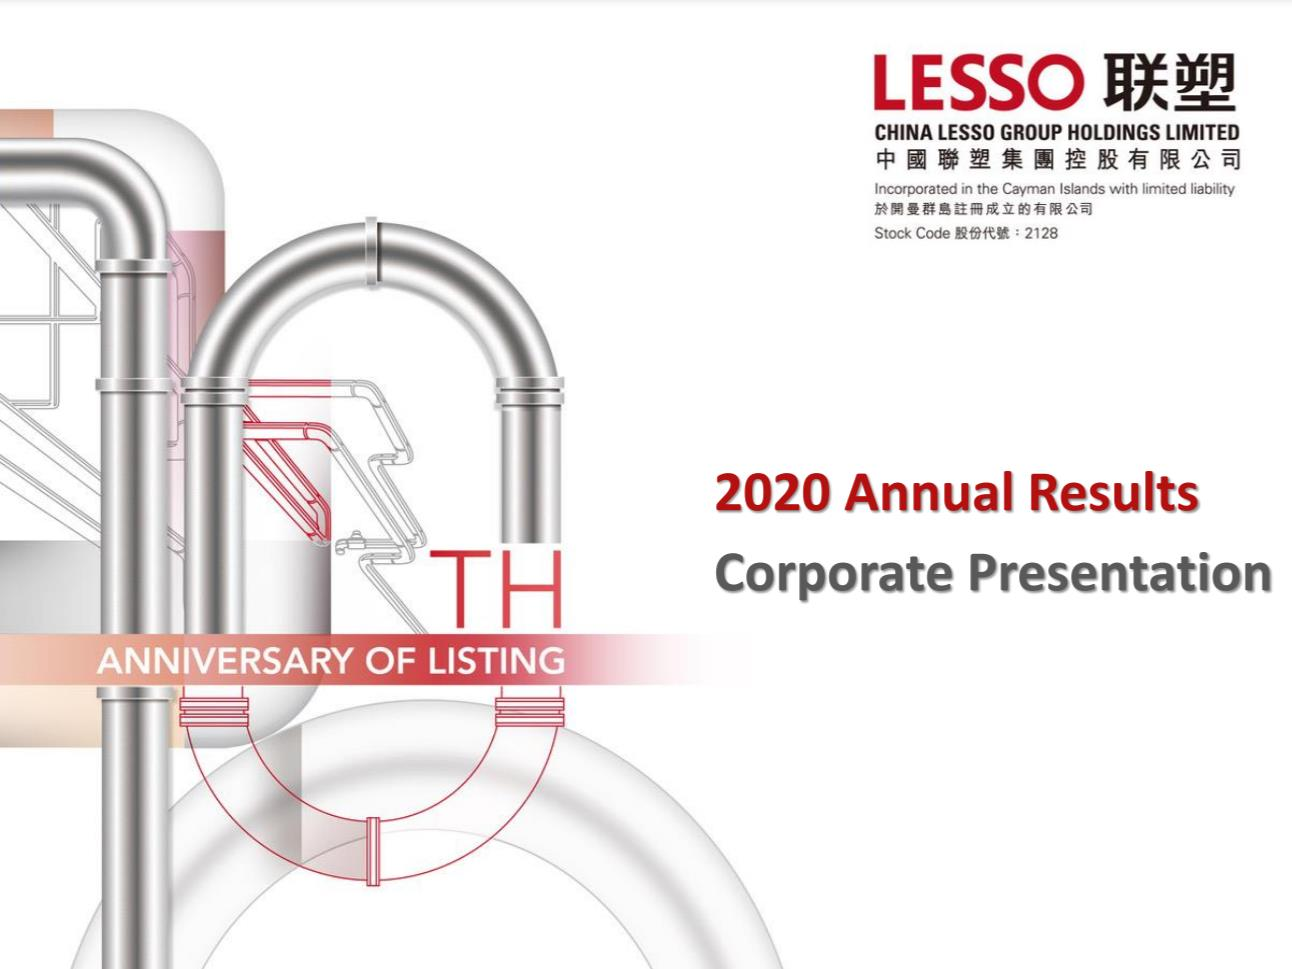 2020 Annual Results Corporate Presentation